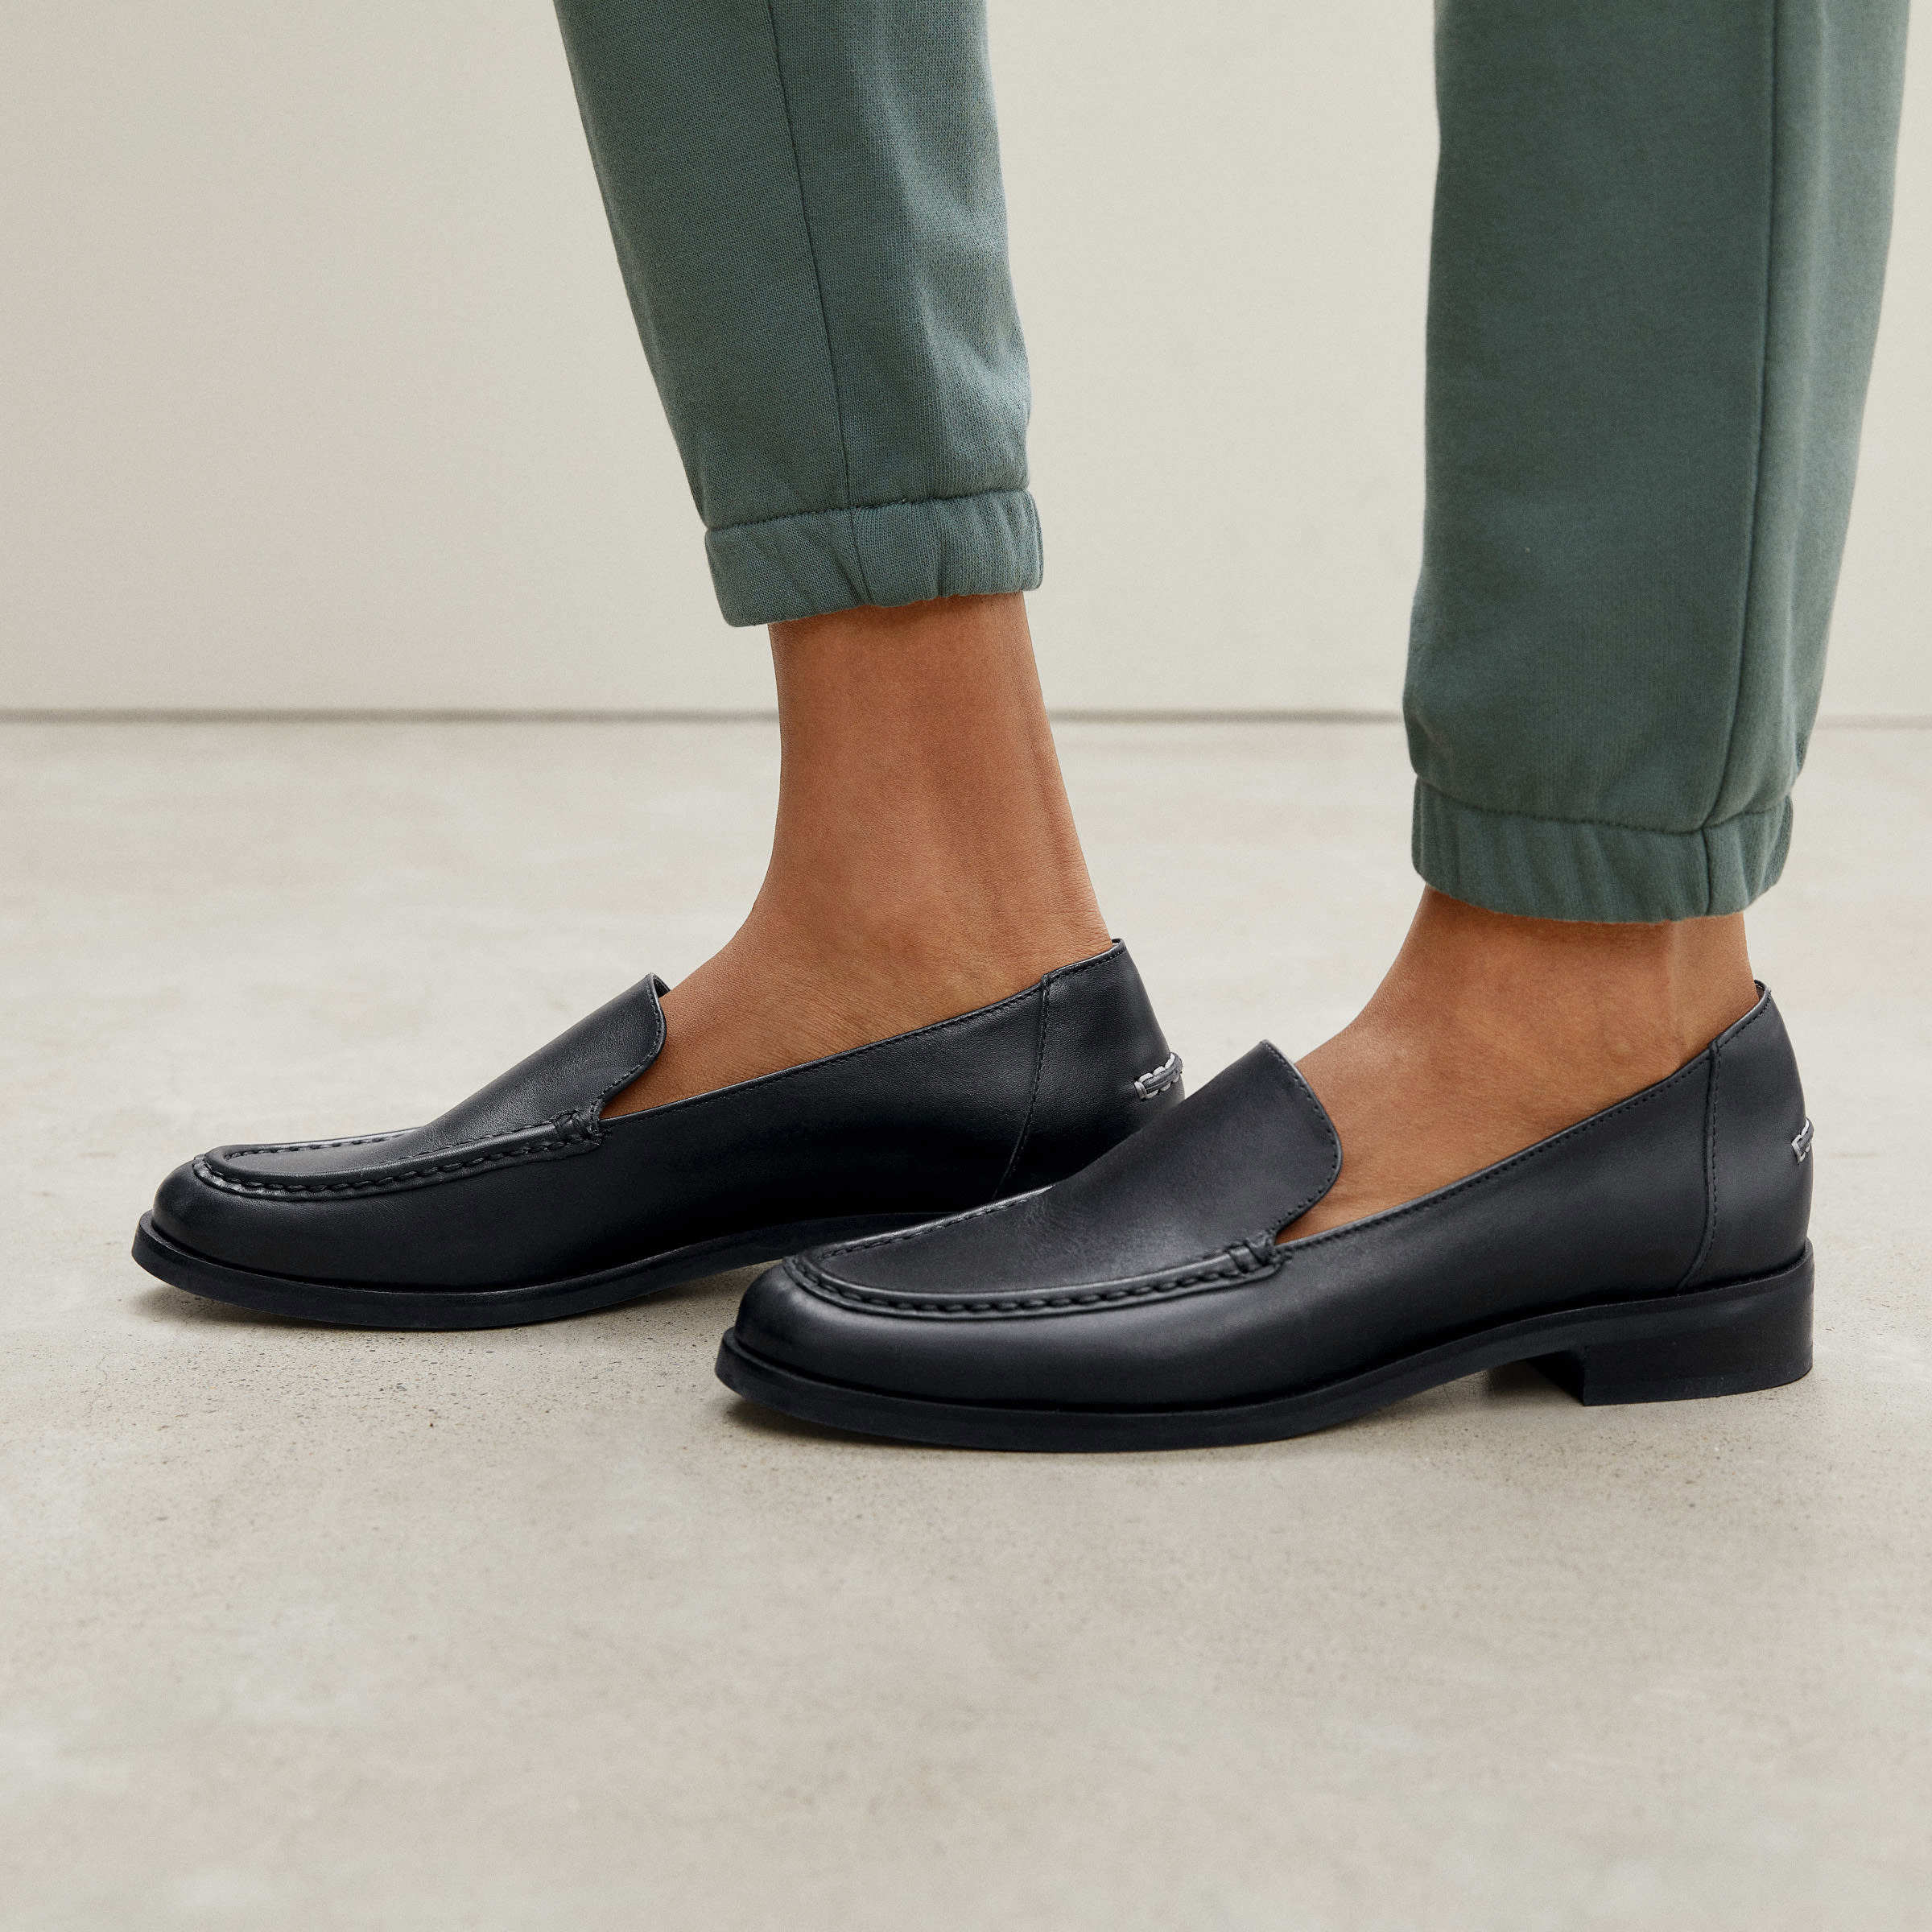 a model in black loafers